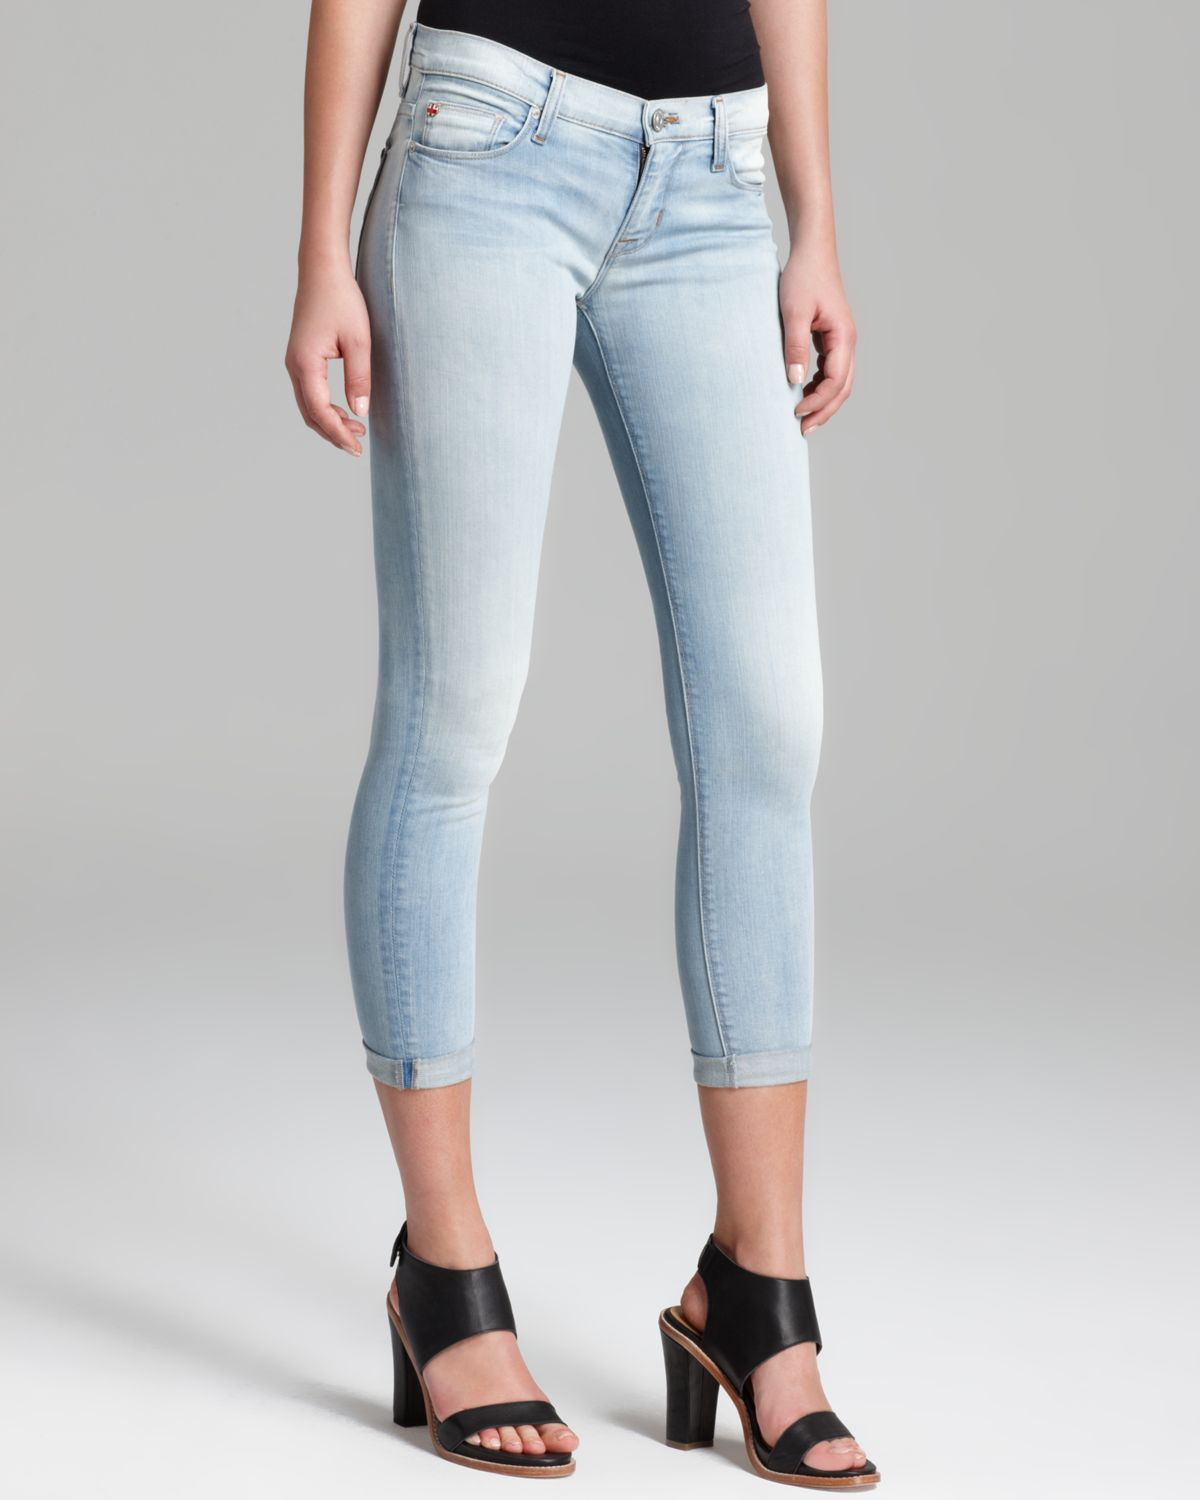 Images of Super Skinny Cropped Jeans - Reikian